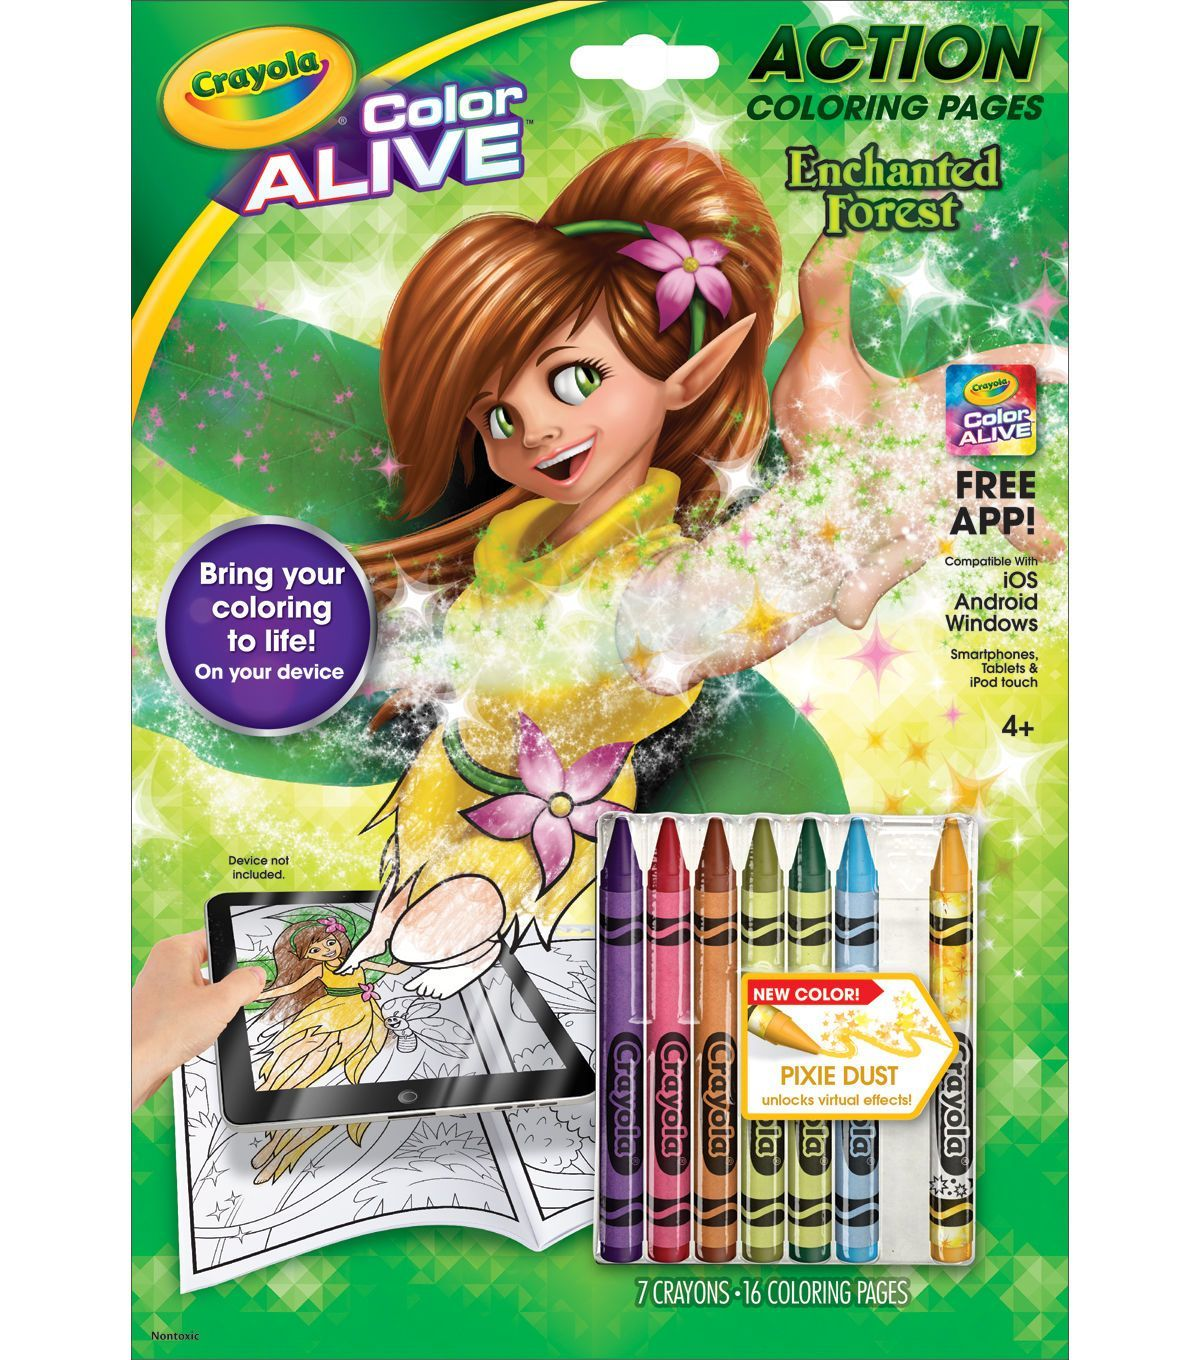 Crayola Color Alive Action Coloring Pages - Enchanted Forest | Products